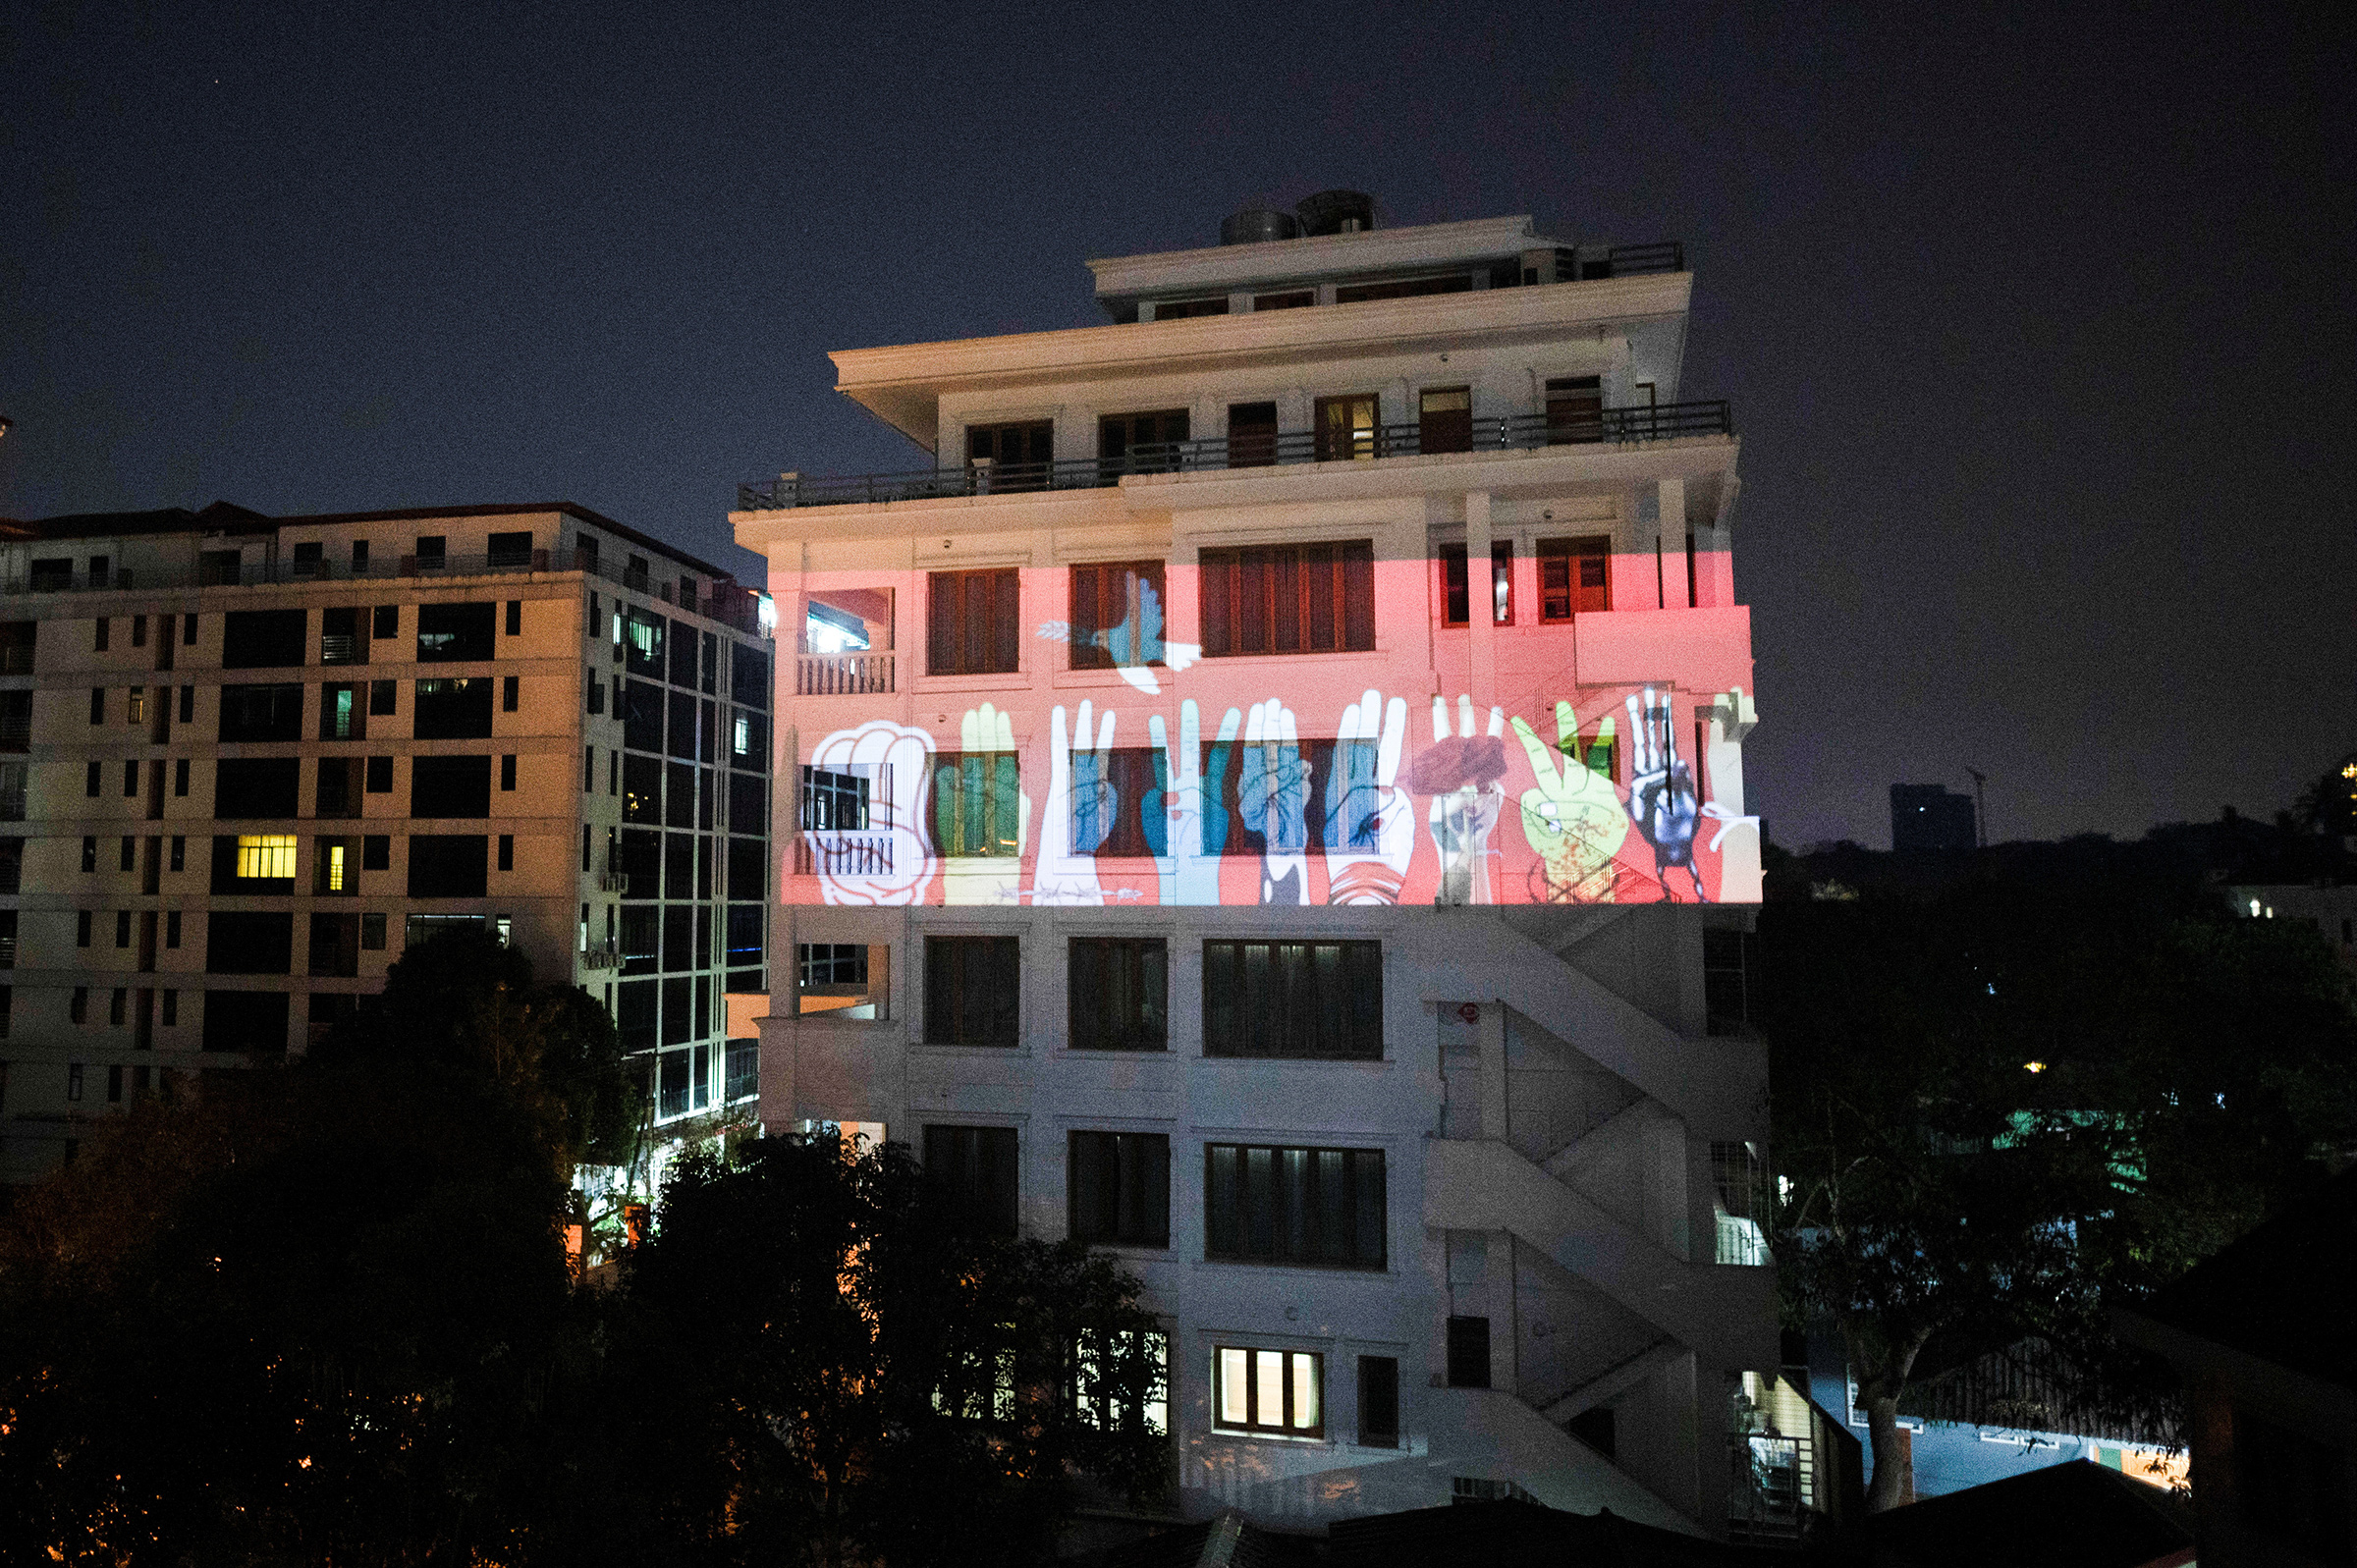 An image of three-finger salute is projected on a building during a night protest against the military coup and to demand the release of elected leader Aung San Suu Kyi, in Yangon, Myanmar, Feb. 9